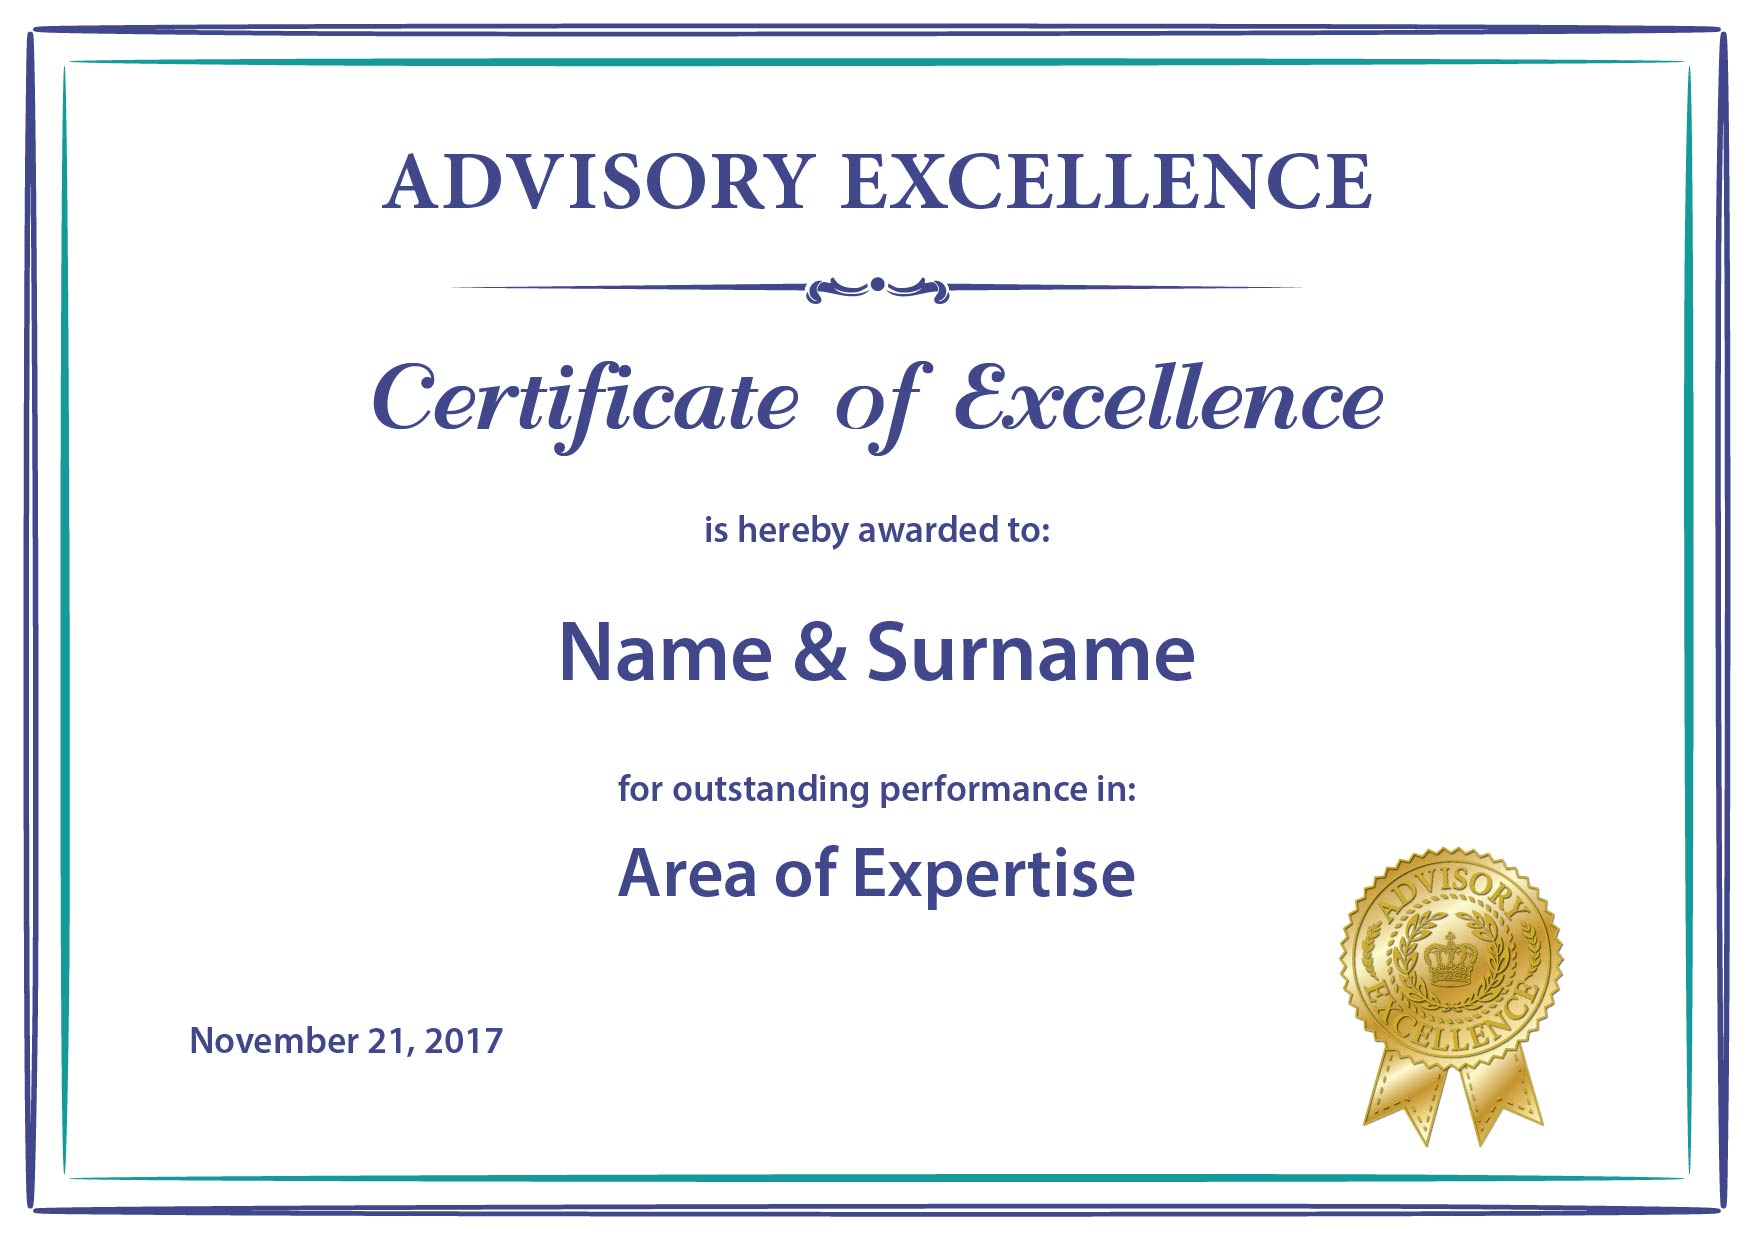 certificate excellence printed advisory example